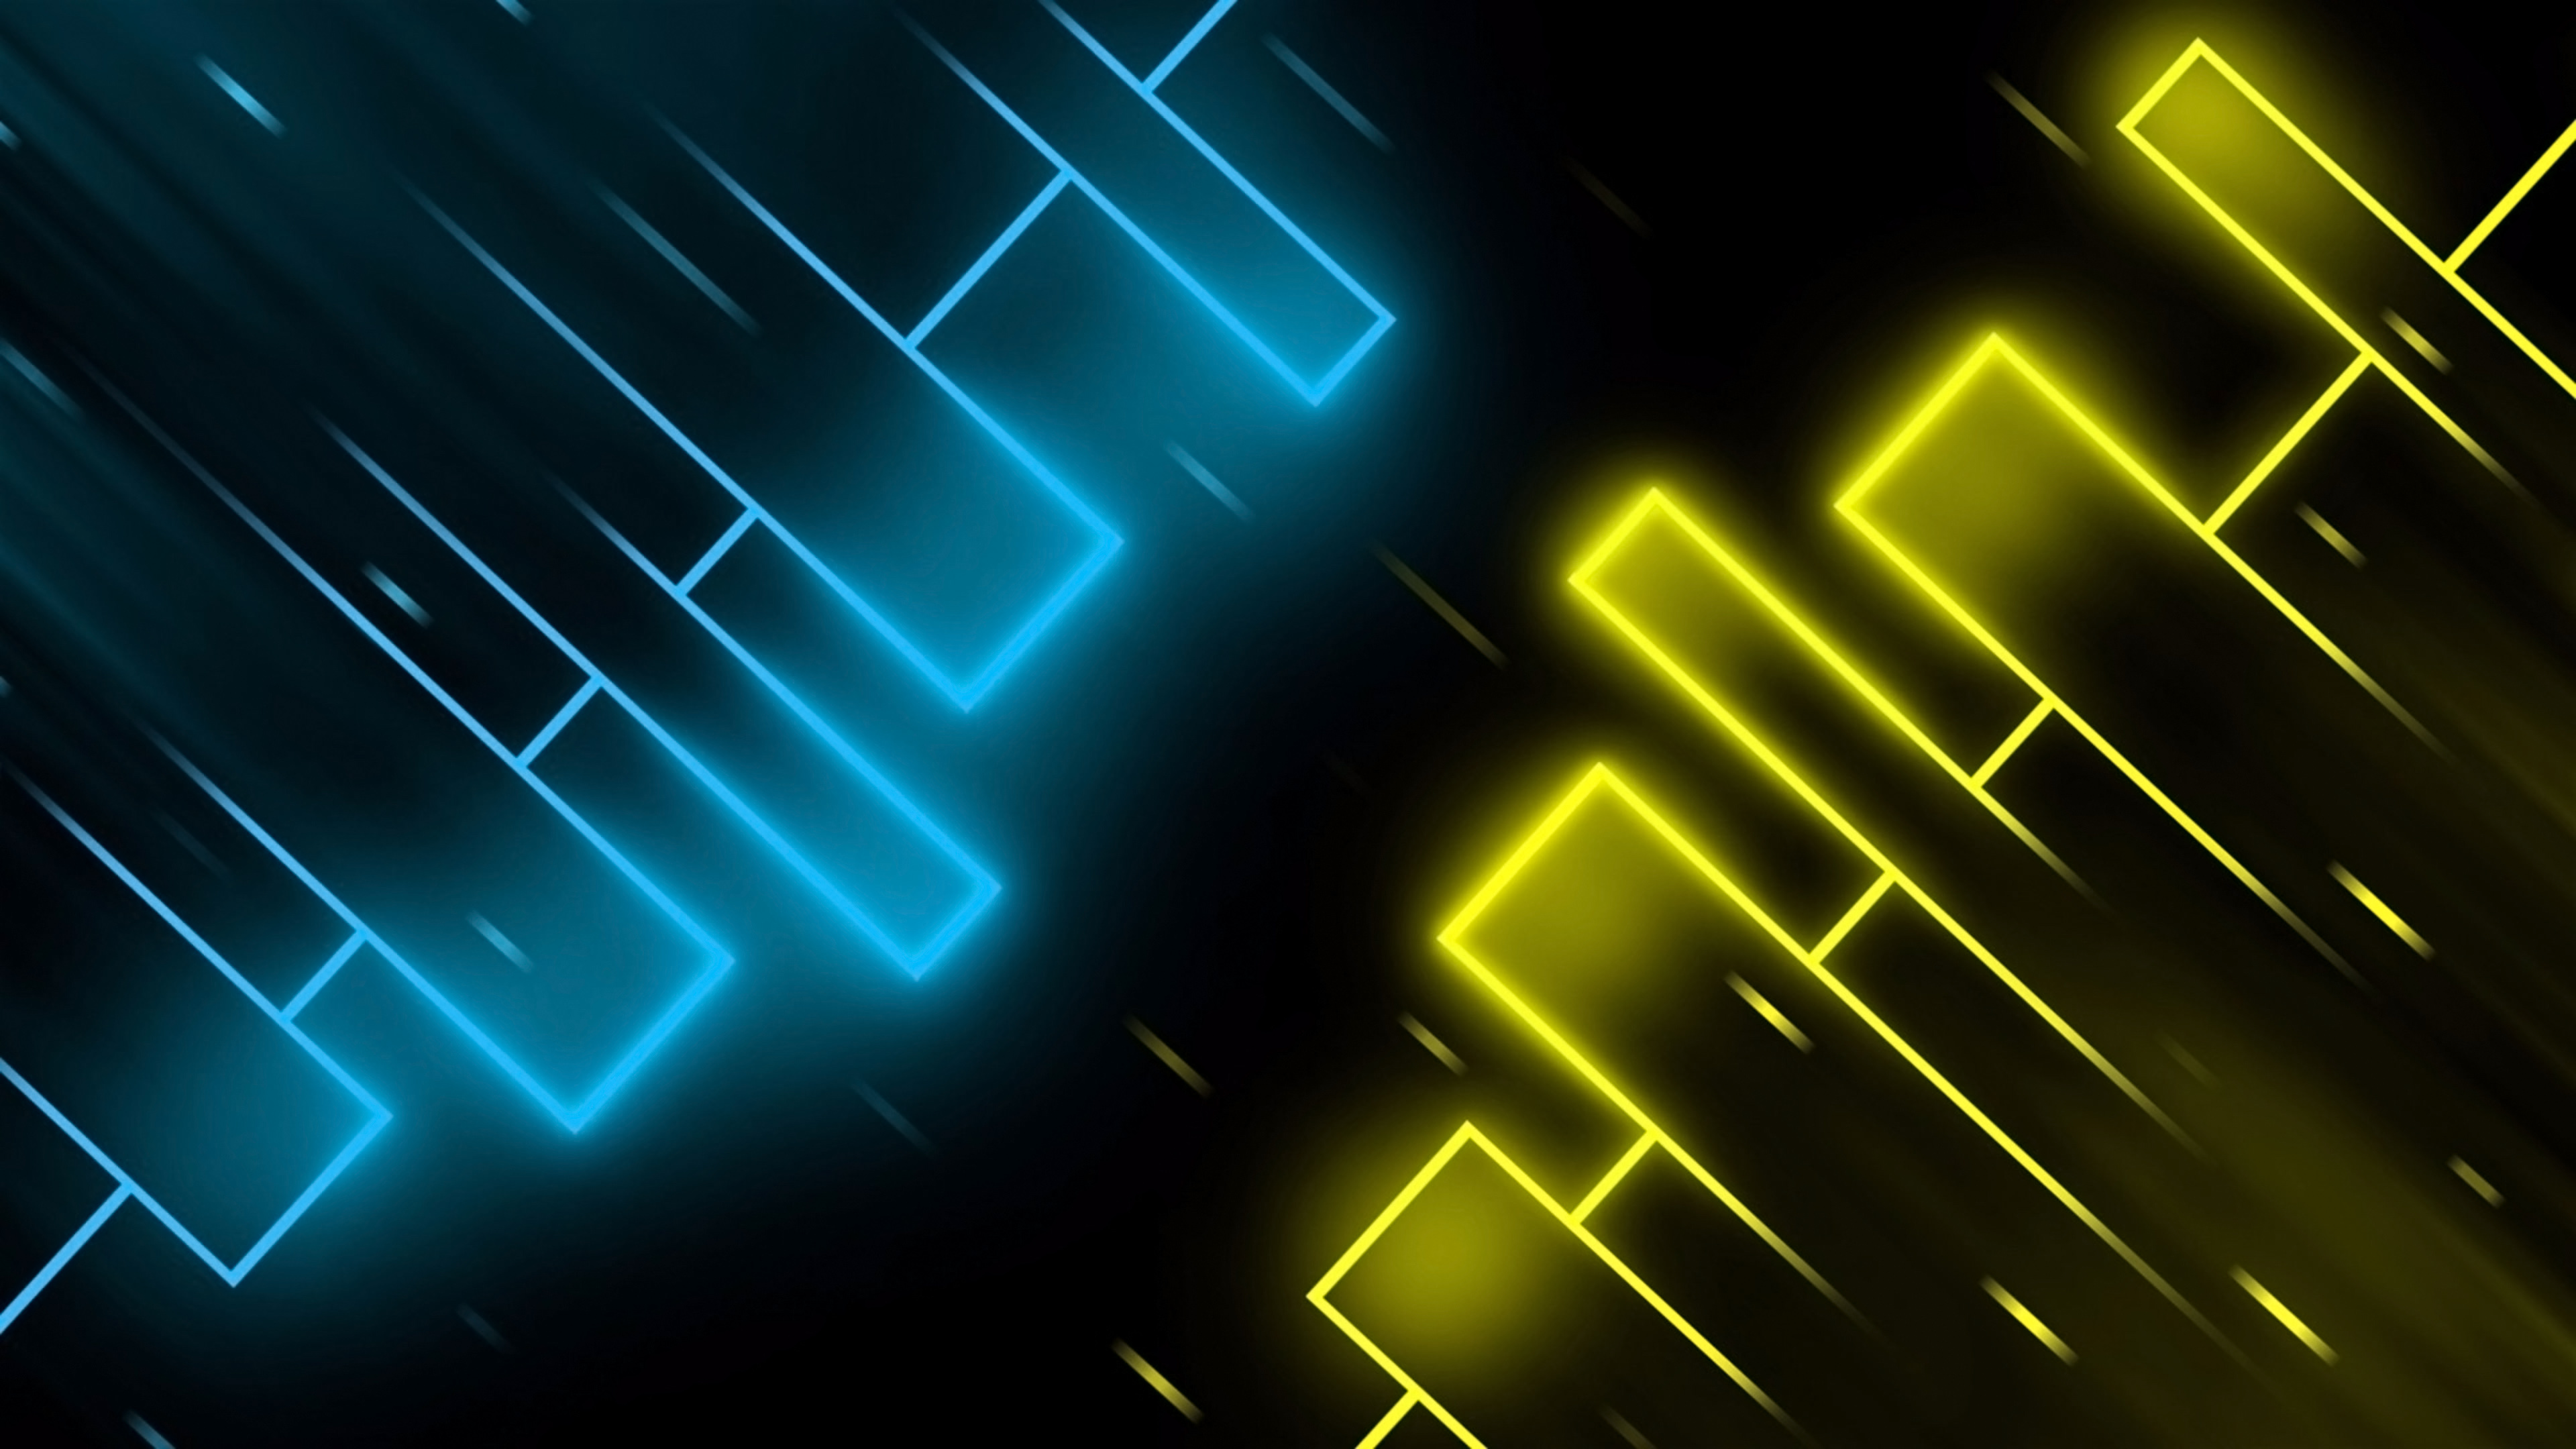 Neon Blue And Yellow Wallpaper 4k Ultra Hd Id 3464